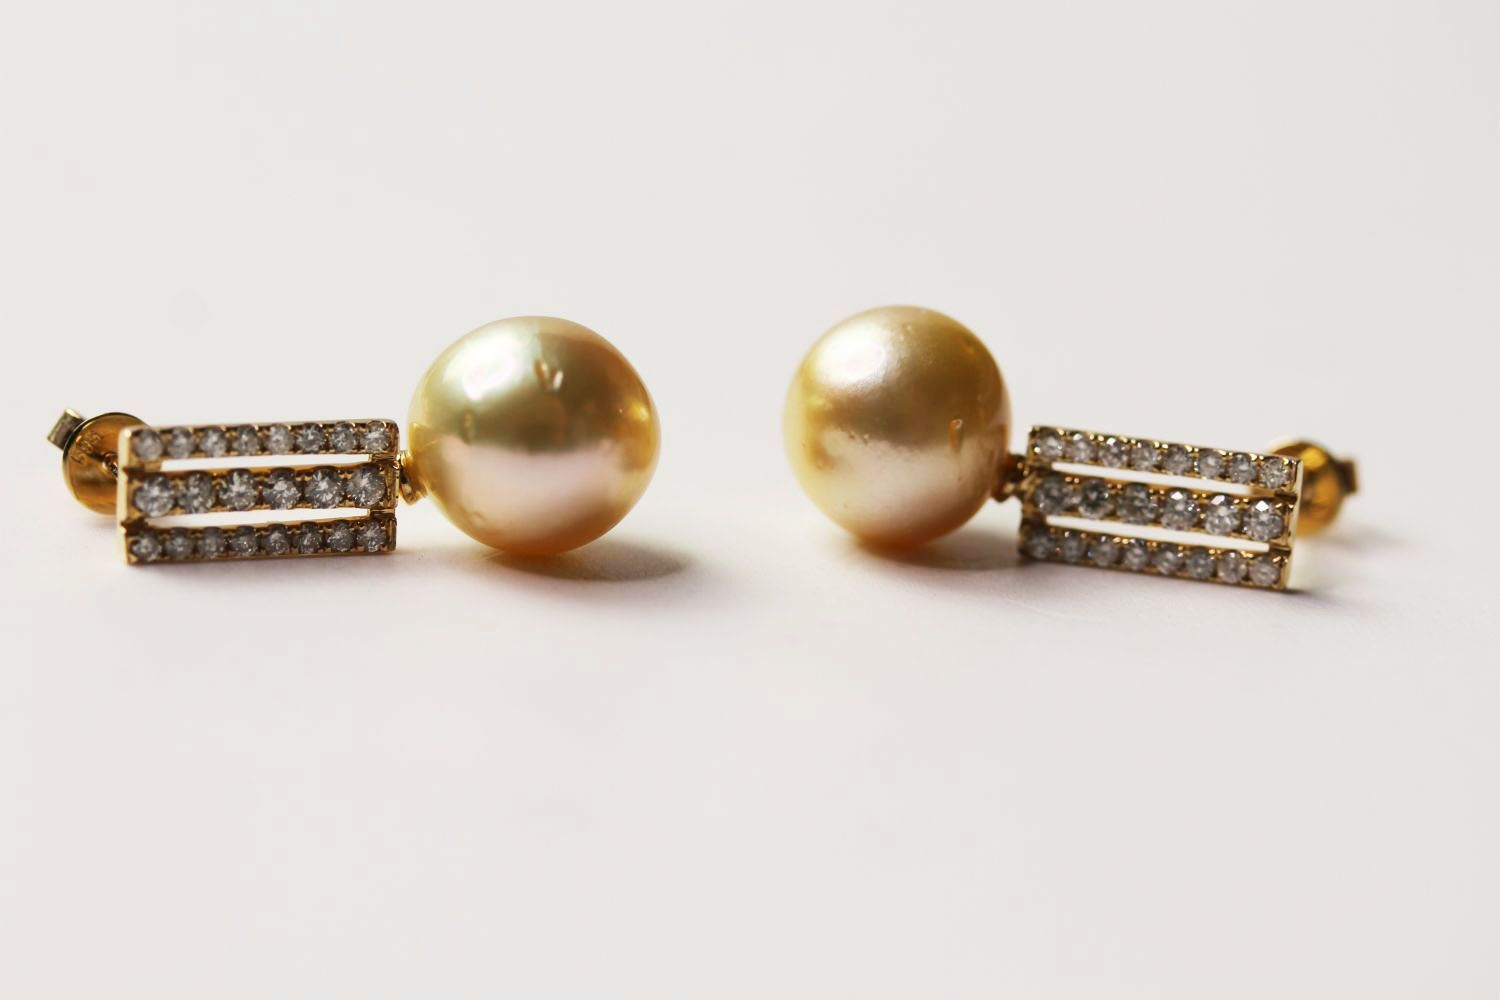 Pair Of Pearl & Diamond Earrings, set with 2 cultured south sea pearls, 44 round brilliant cut